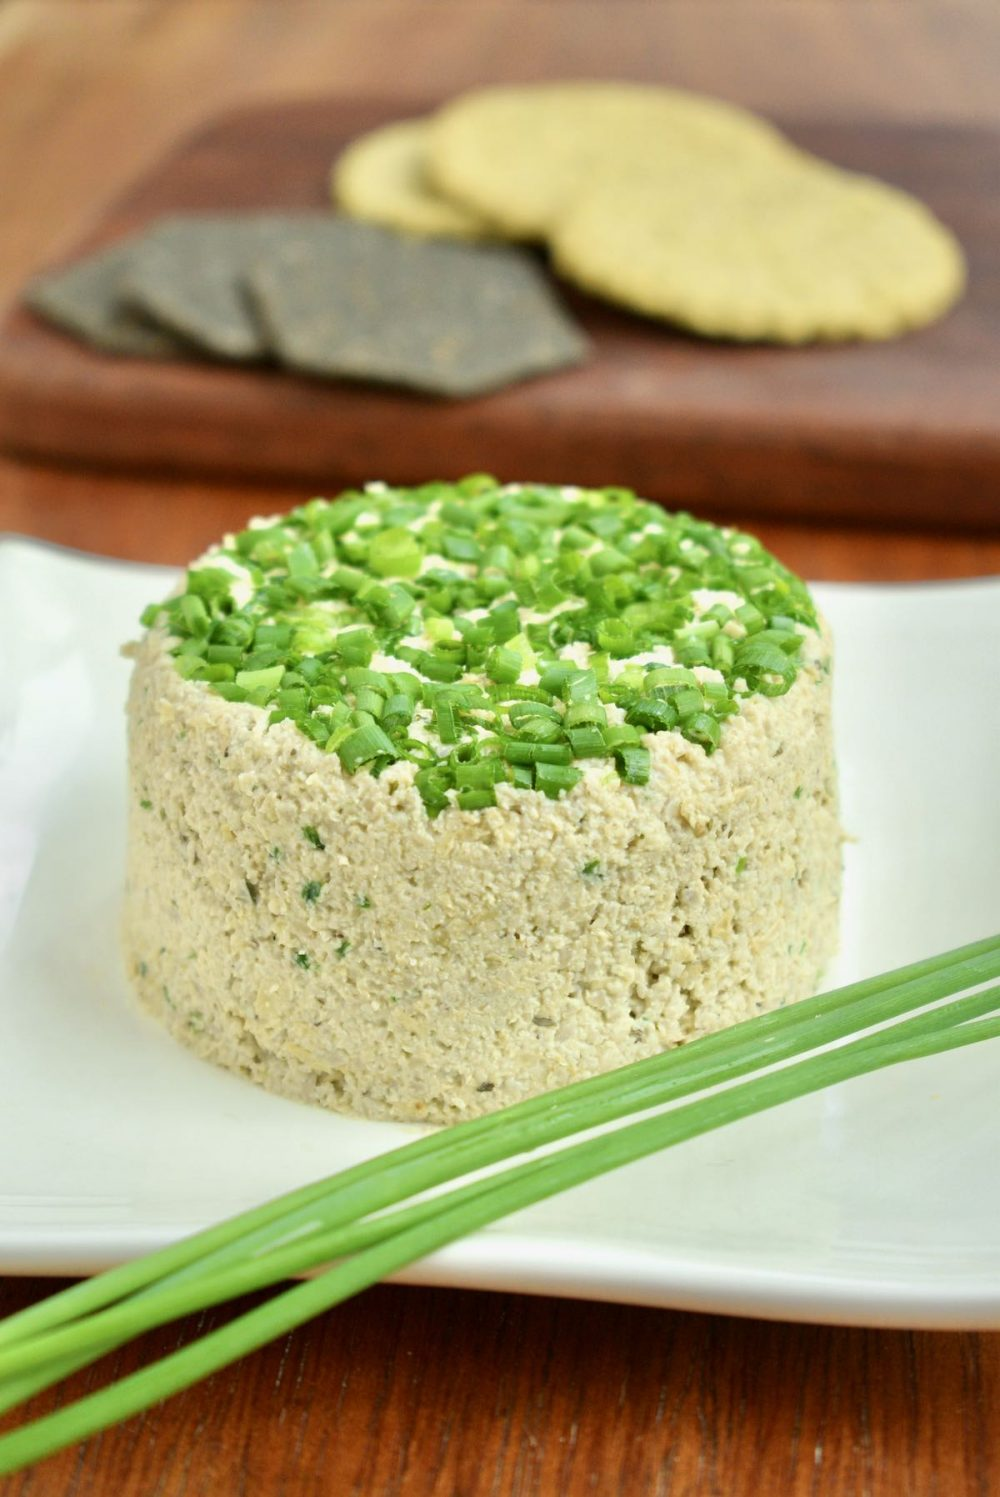 The finished 'cheese' is topped with chives and sits neatly on a white plate.